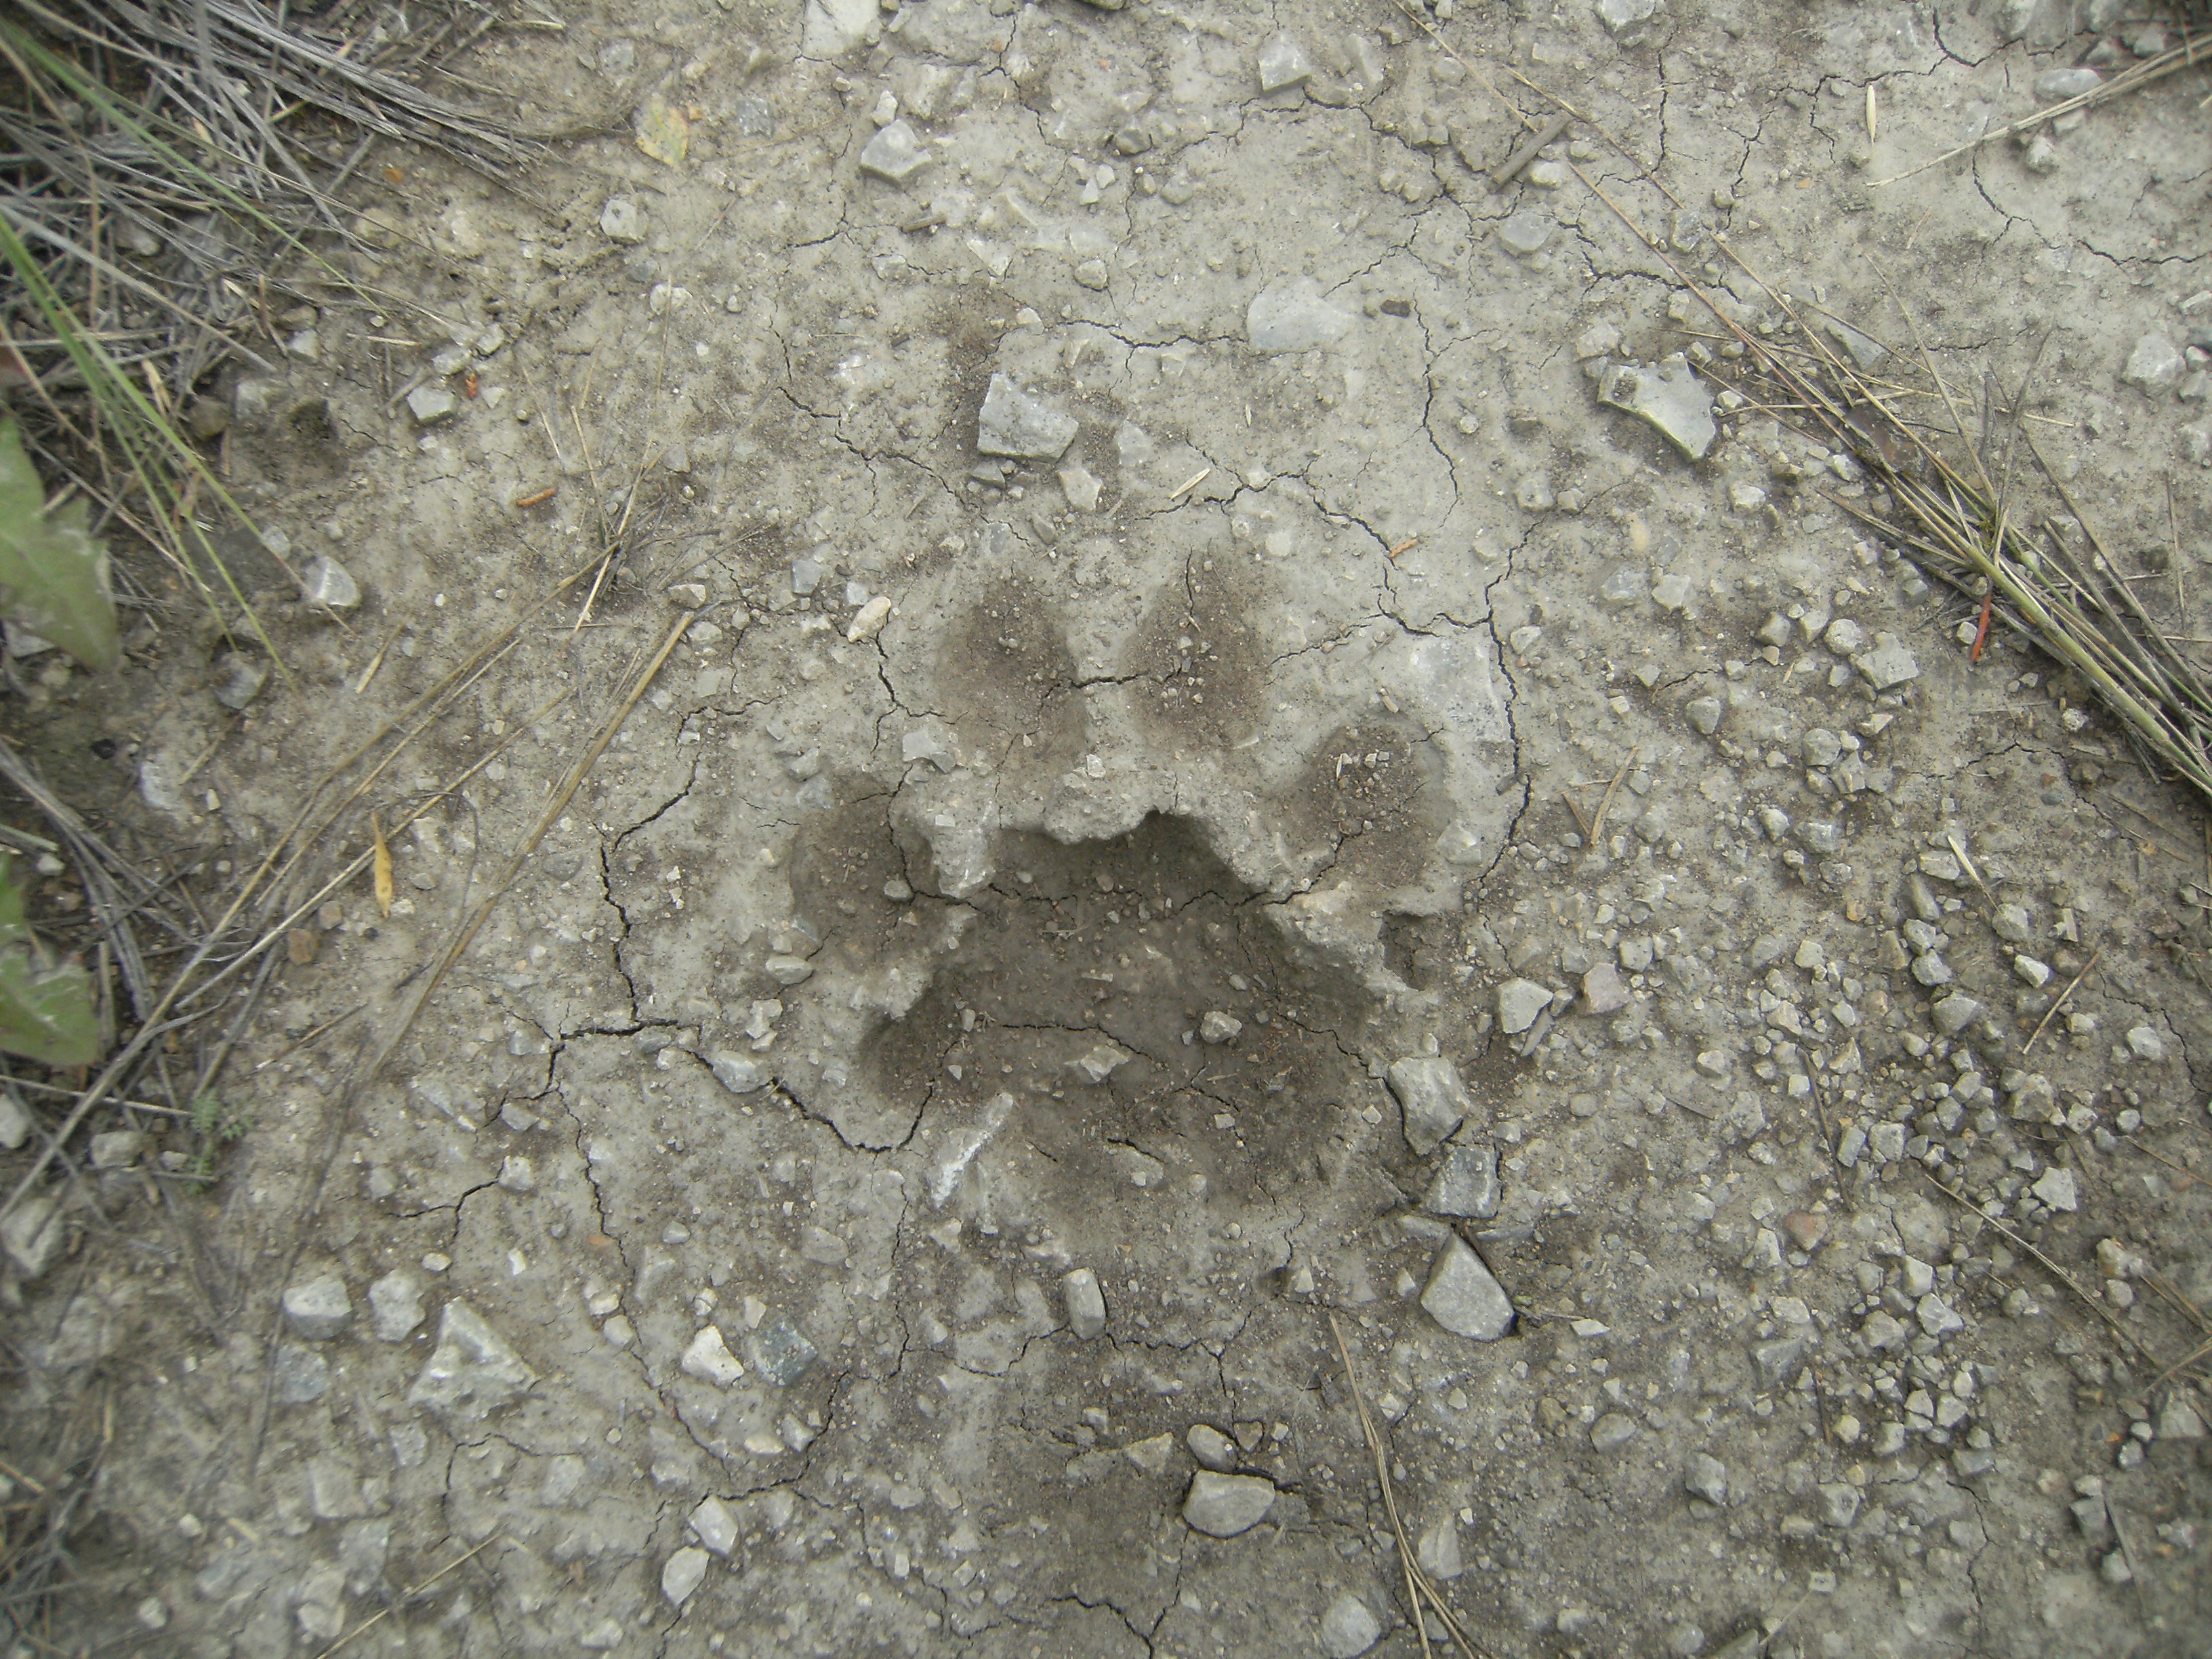 What do coyote tracks look like  Answerscom